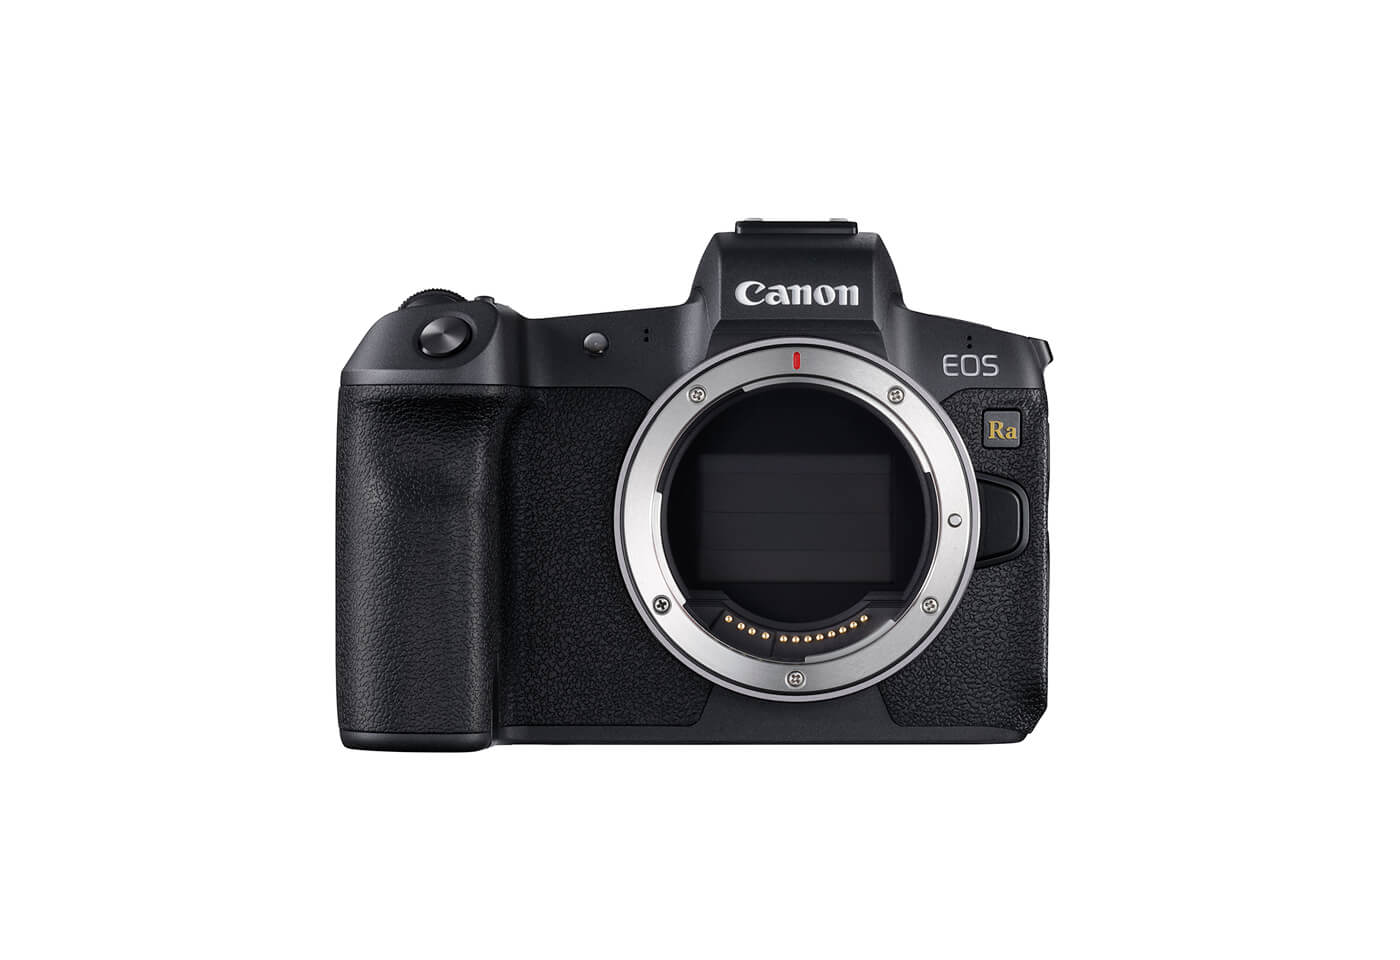 Product image of EOS Ra mirrorless camera